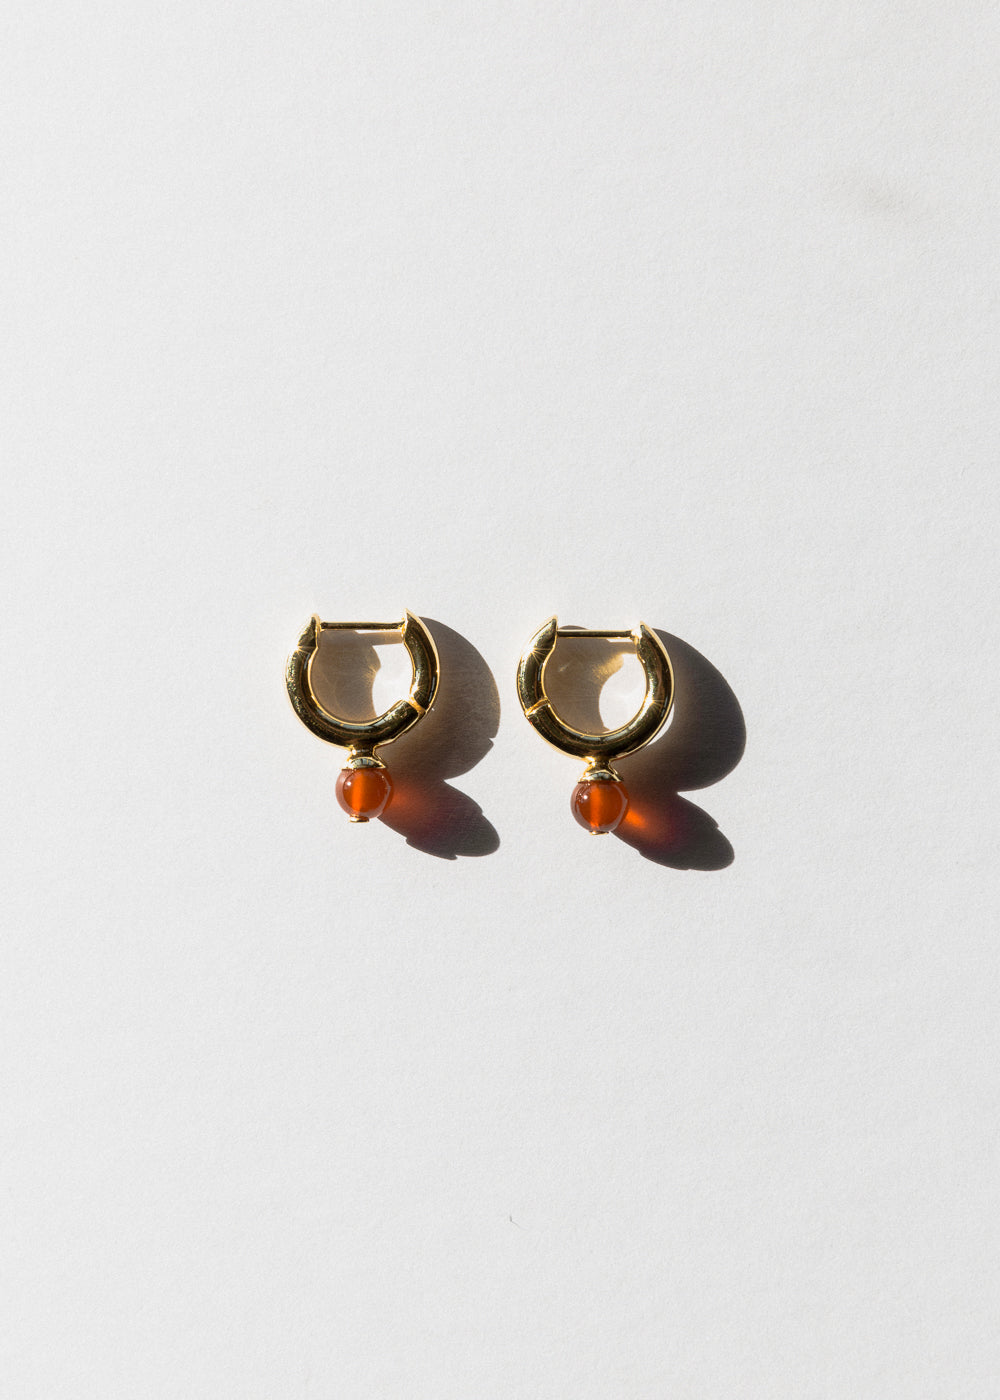 Jasmin Sparrow gold carnelian hoop earrings on Maker's mrkt Maker's market melbourne